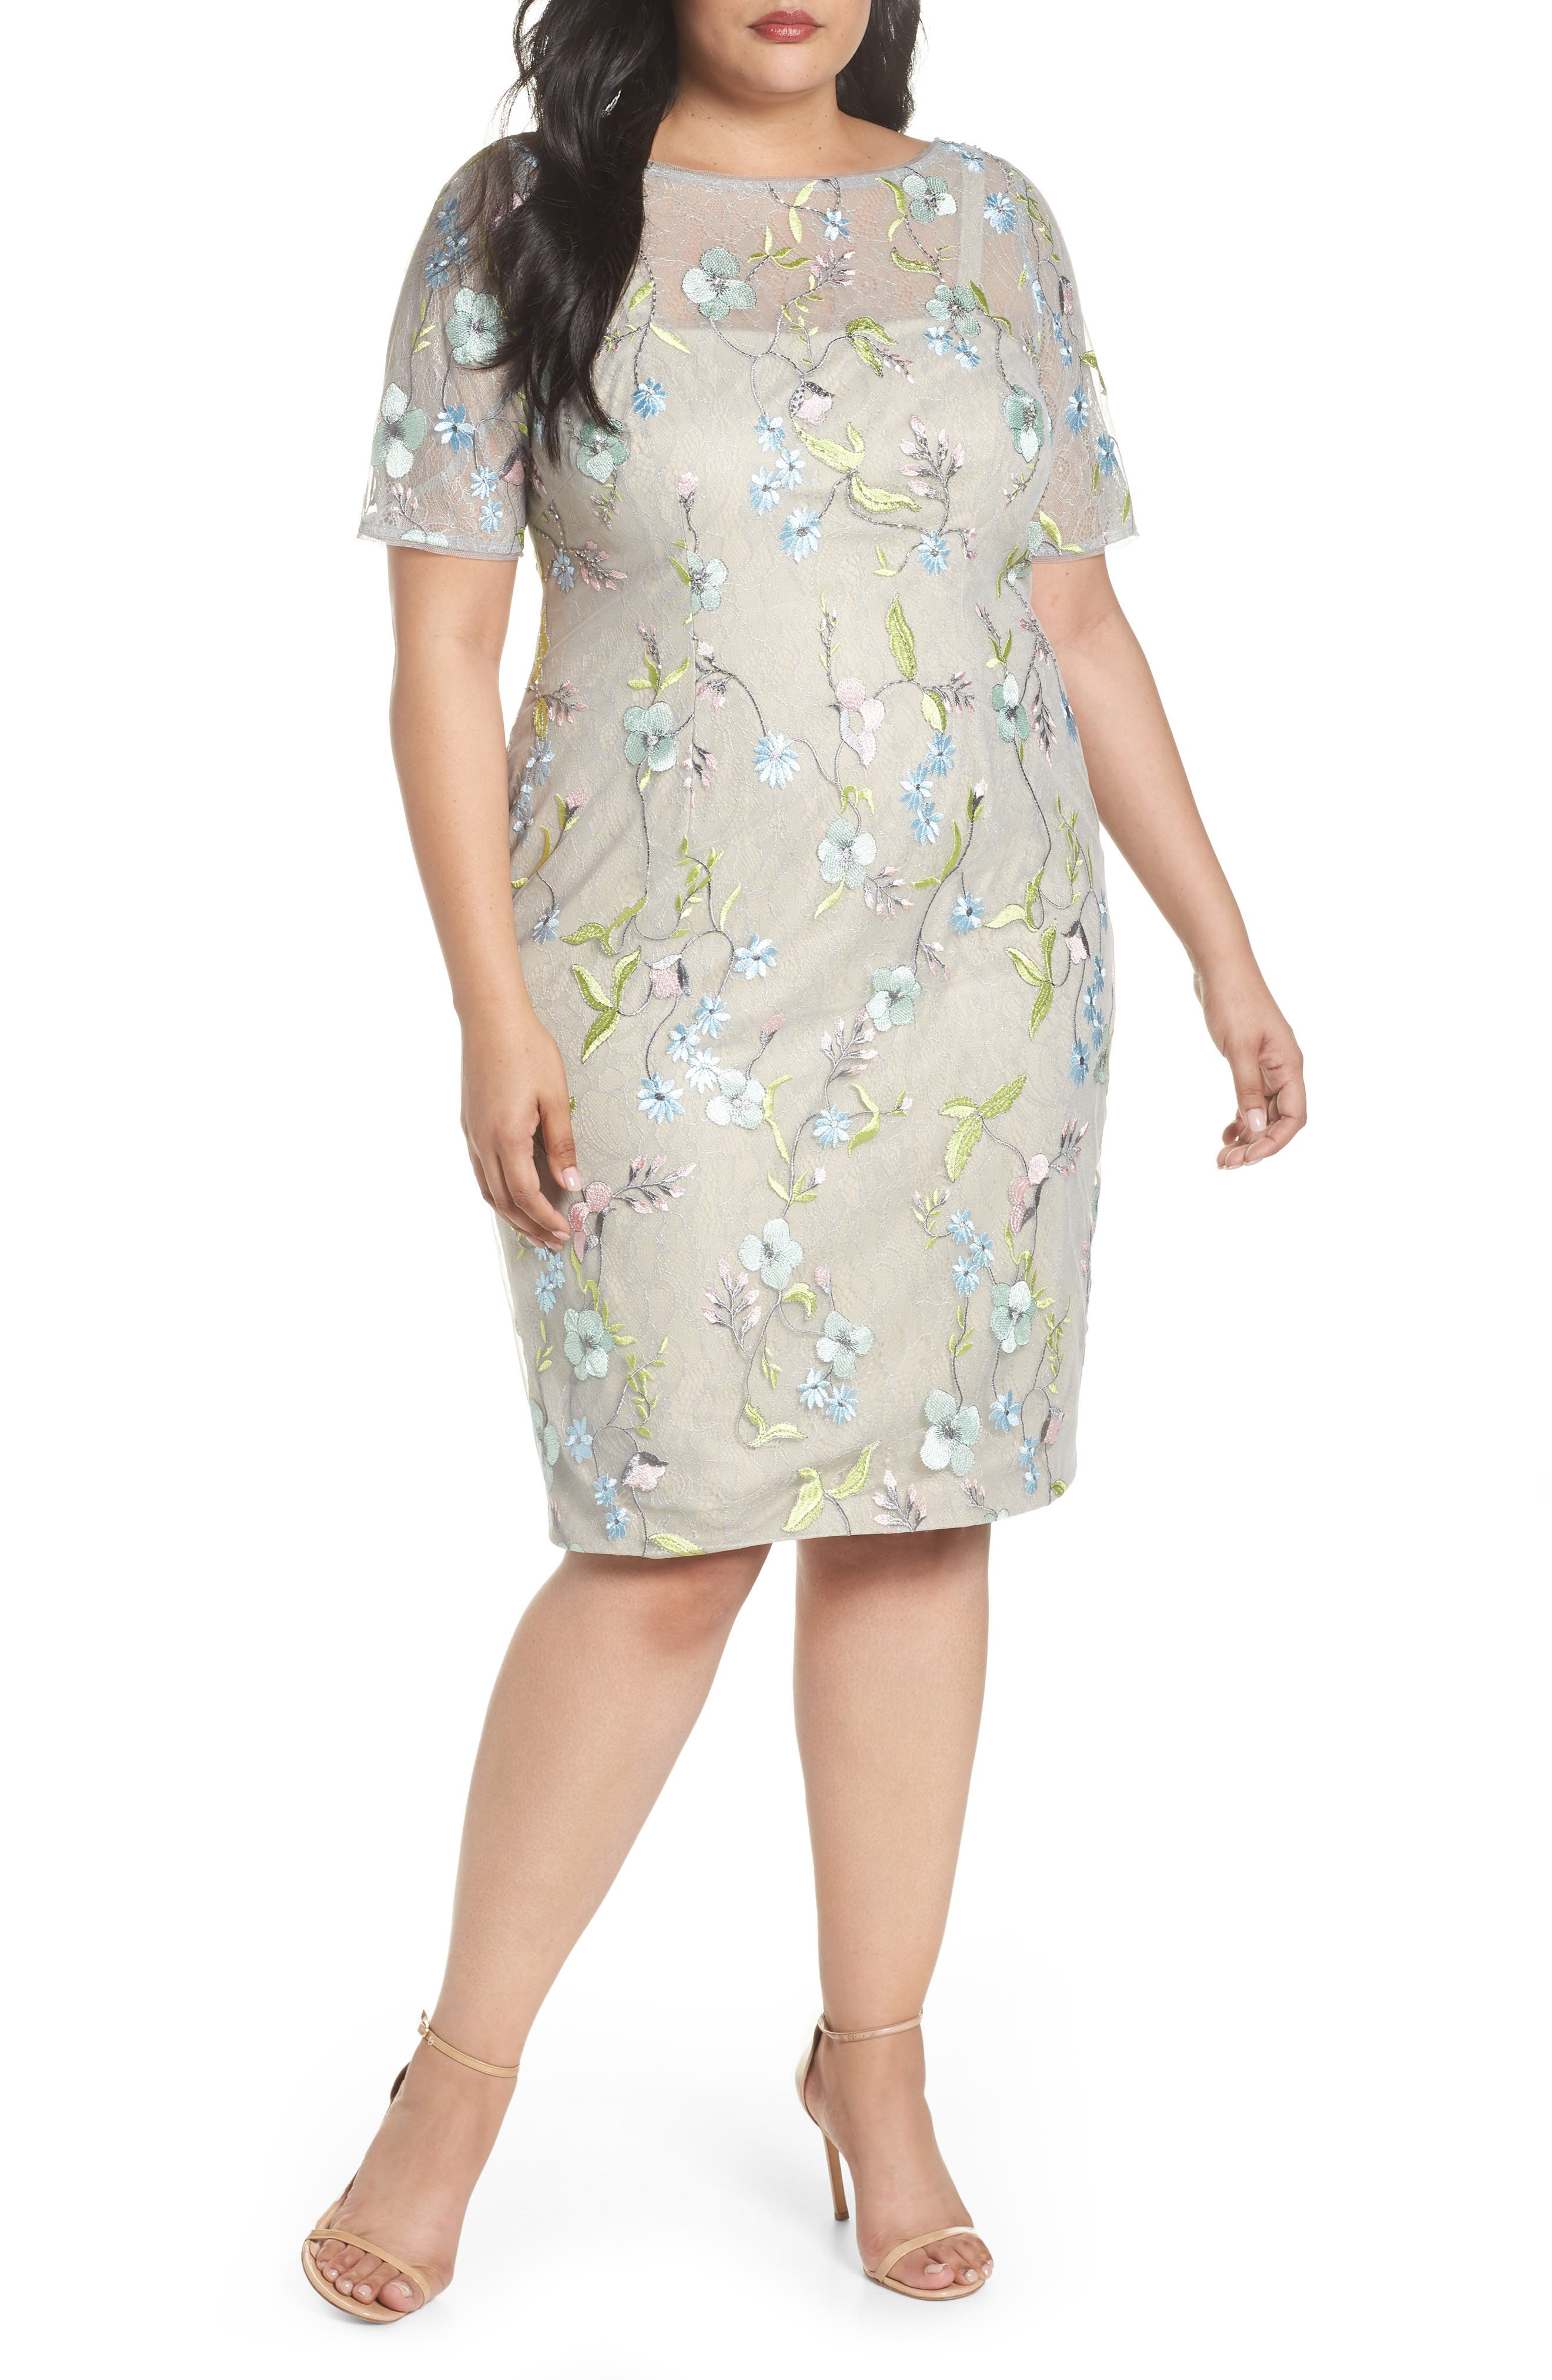 Adrianna Papell Embroidered Lace Sheath Dress (Plus Size)